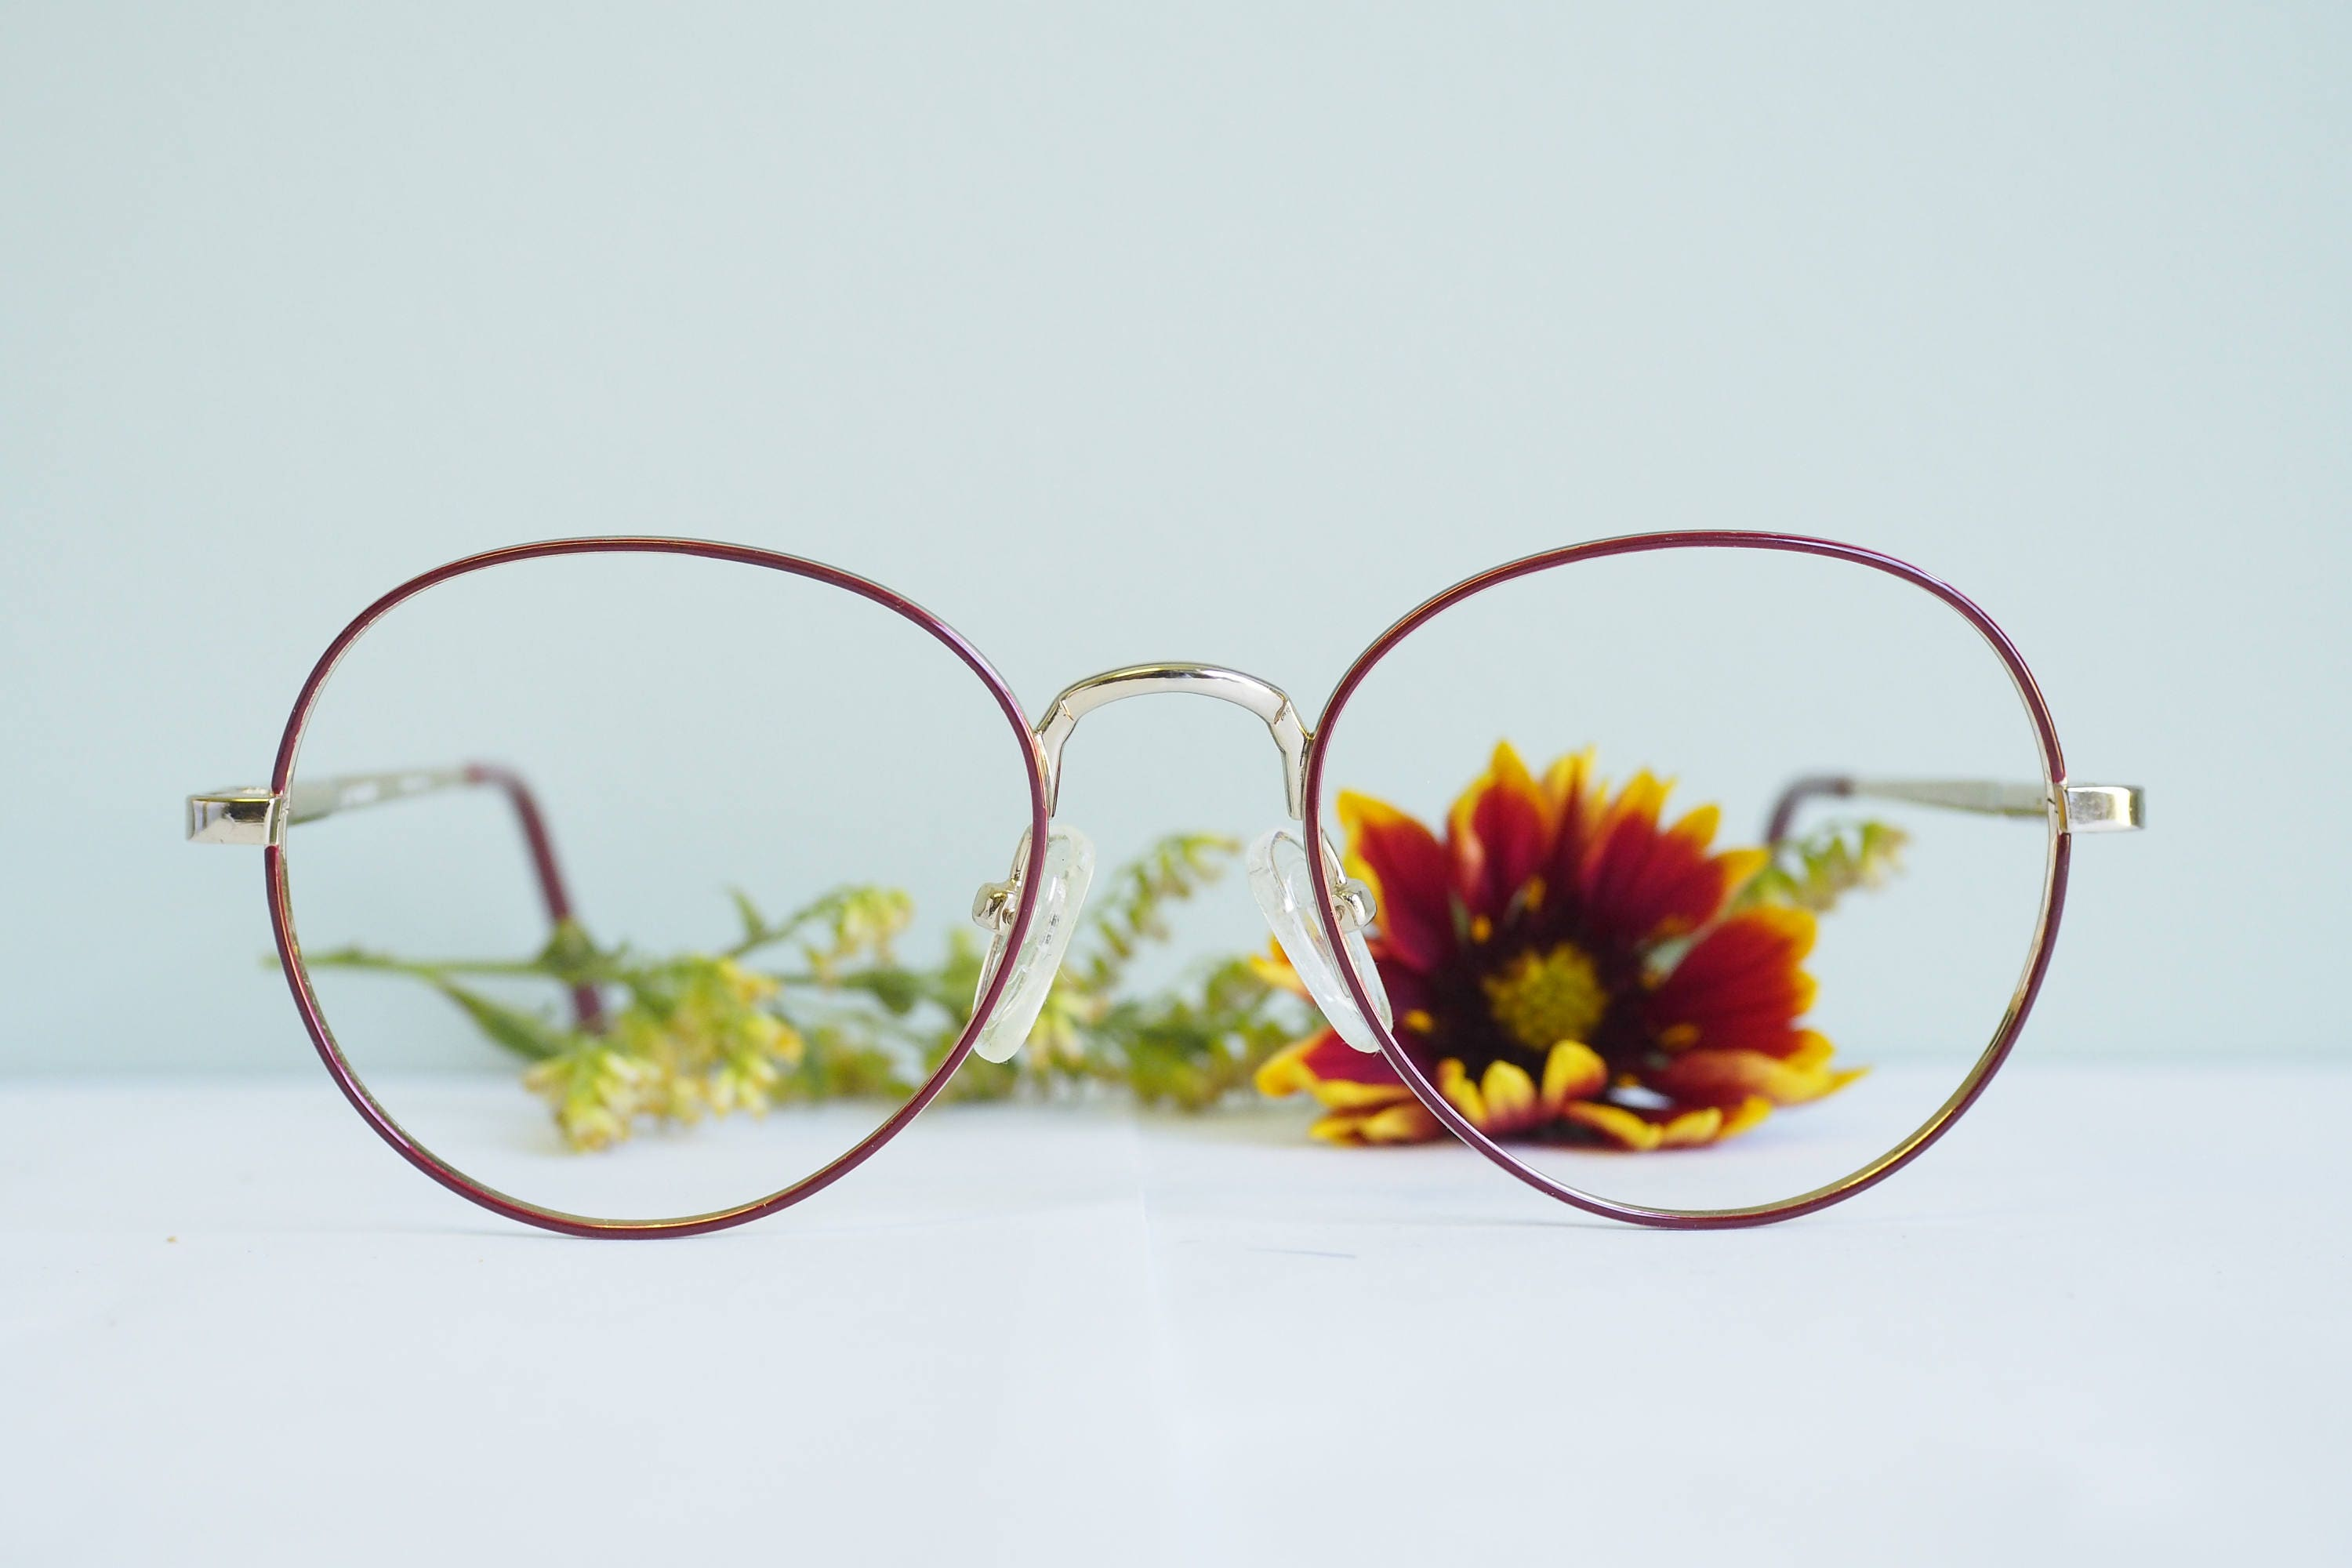 Vintage Eyeglass 1990 s Semi Round Frames By Optimode Made In France Gold  Toned Red Enamel New f738facd63